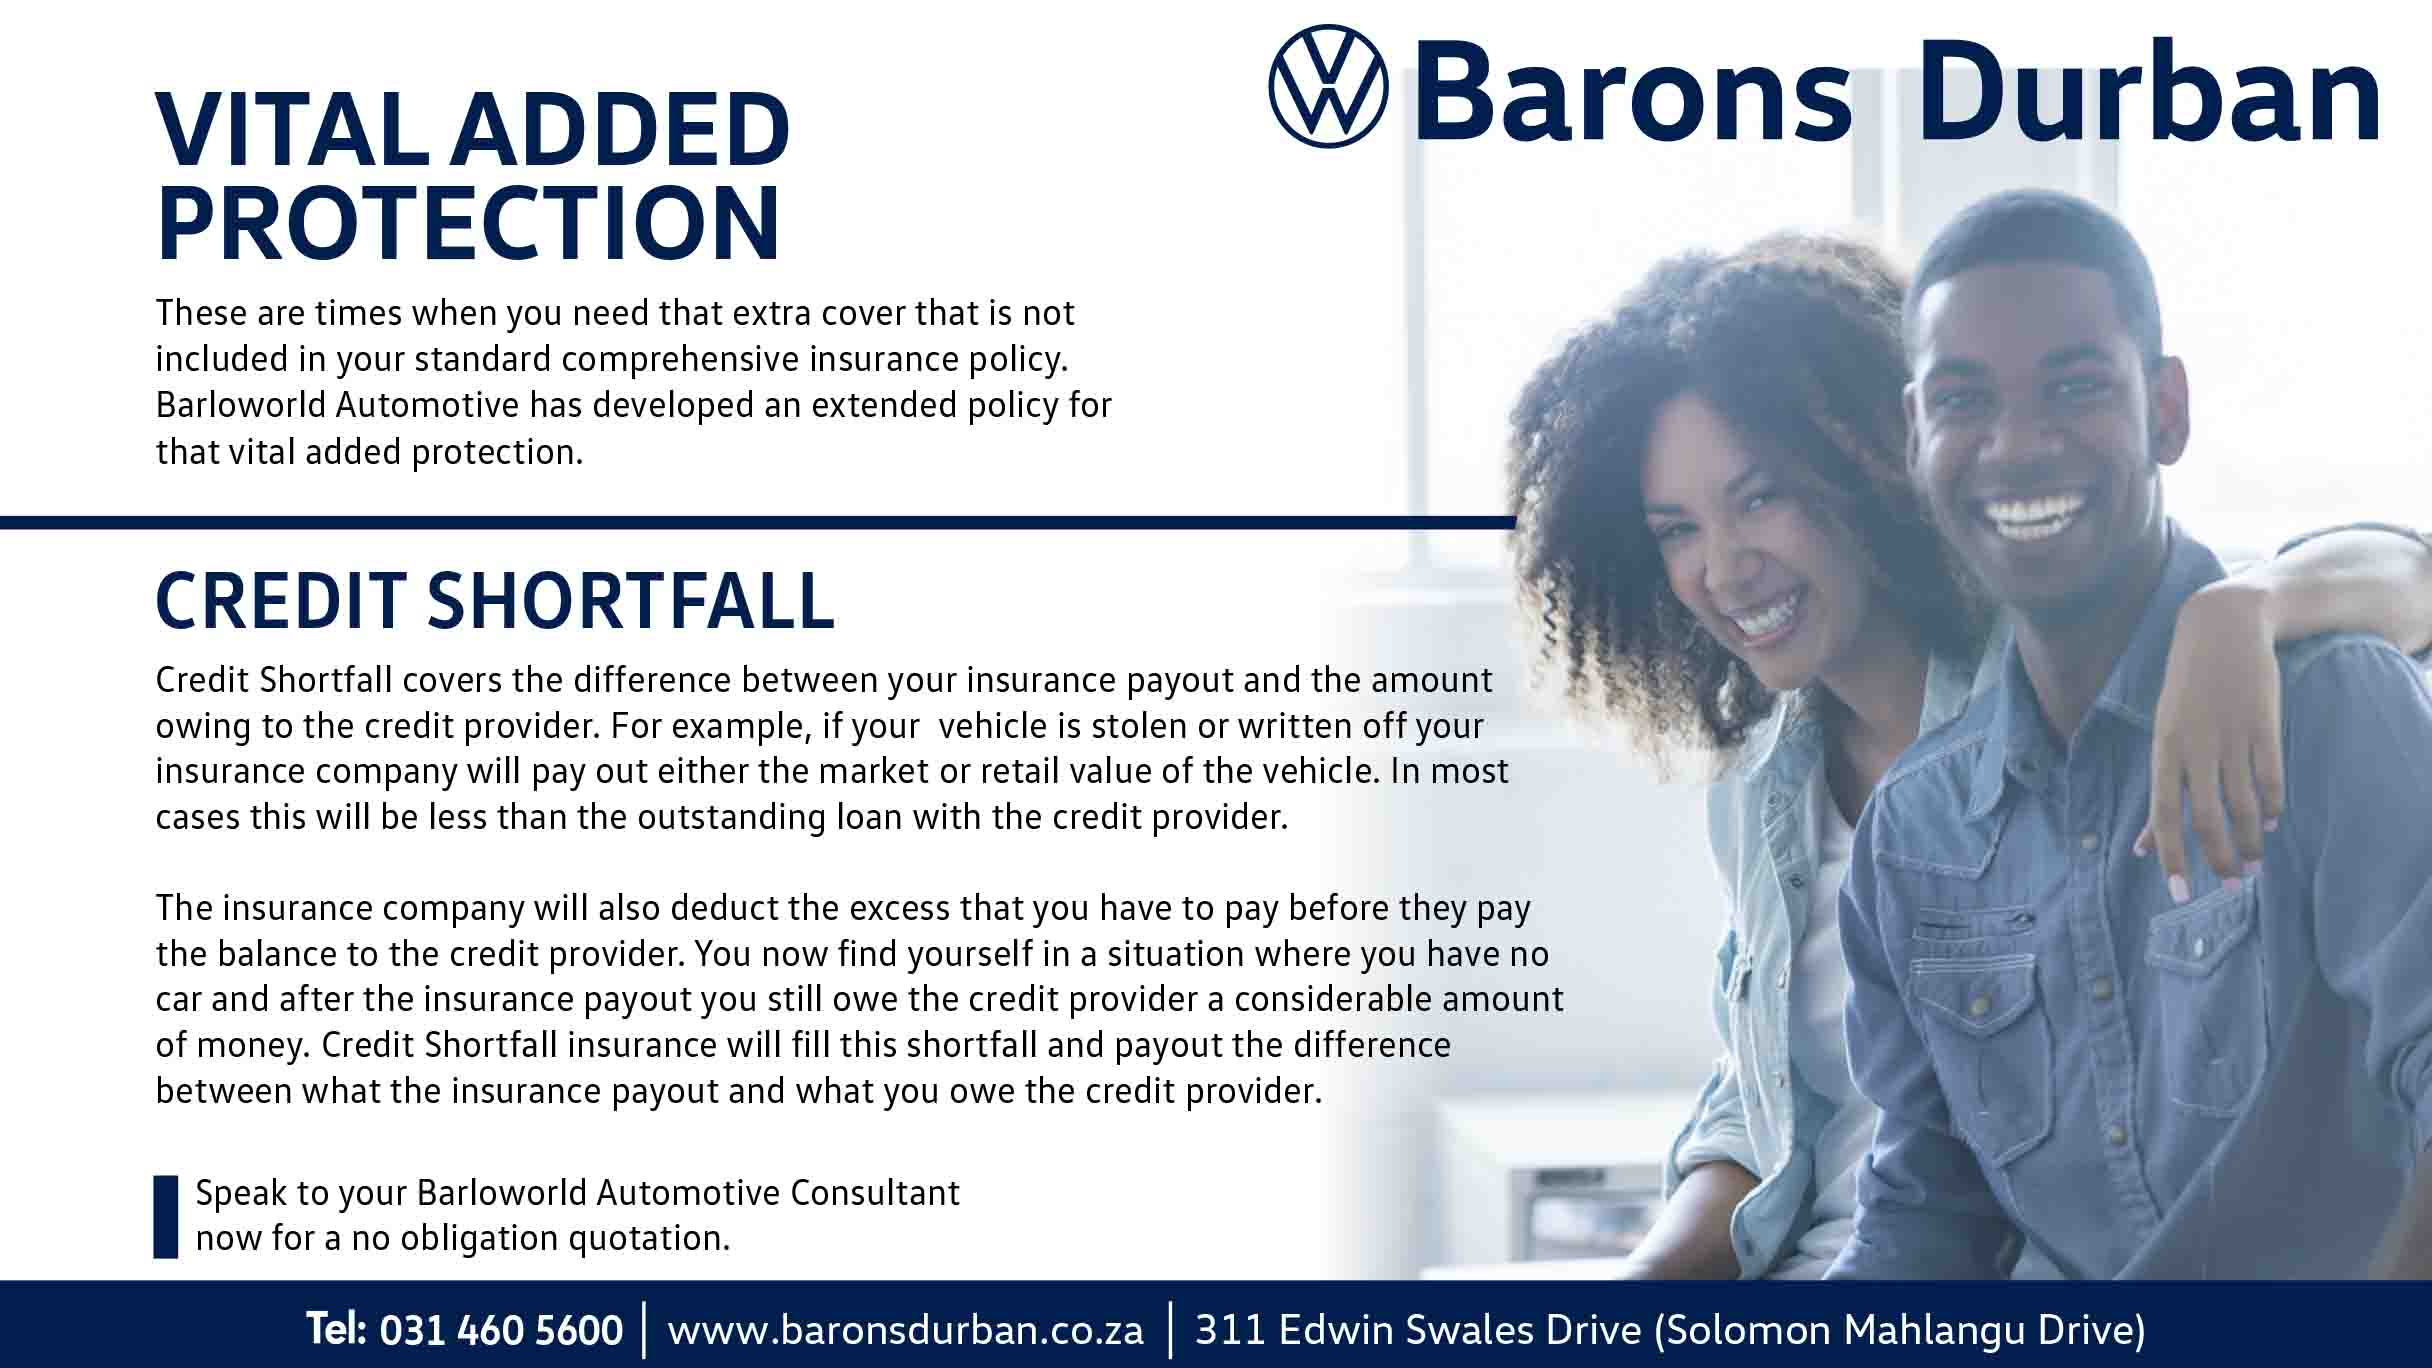 Barons Durban Finance and insurance services